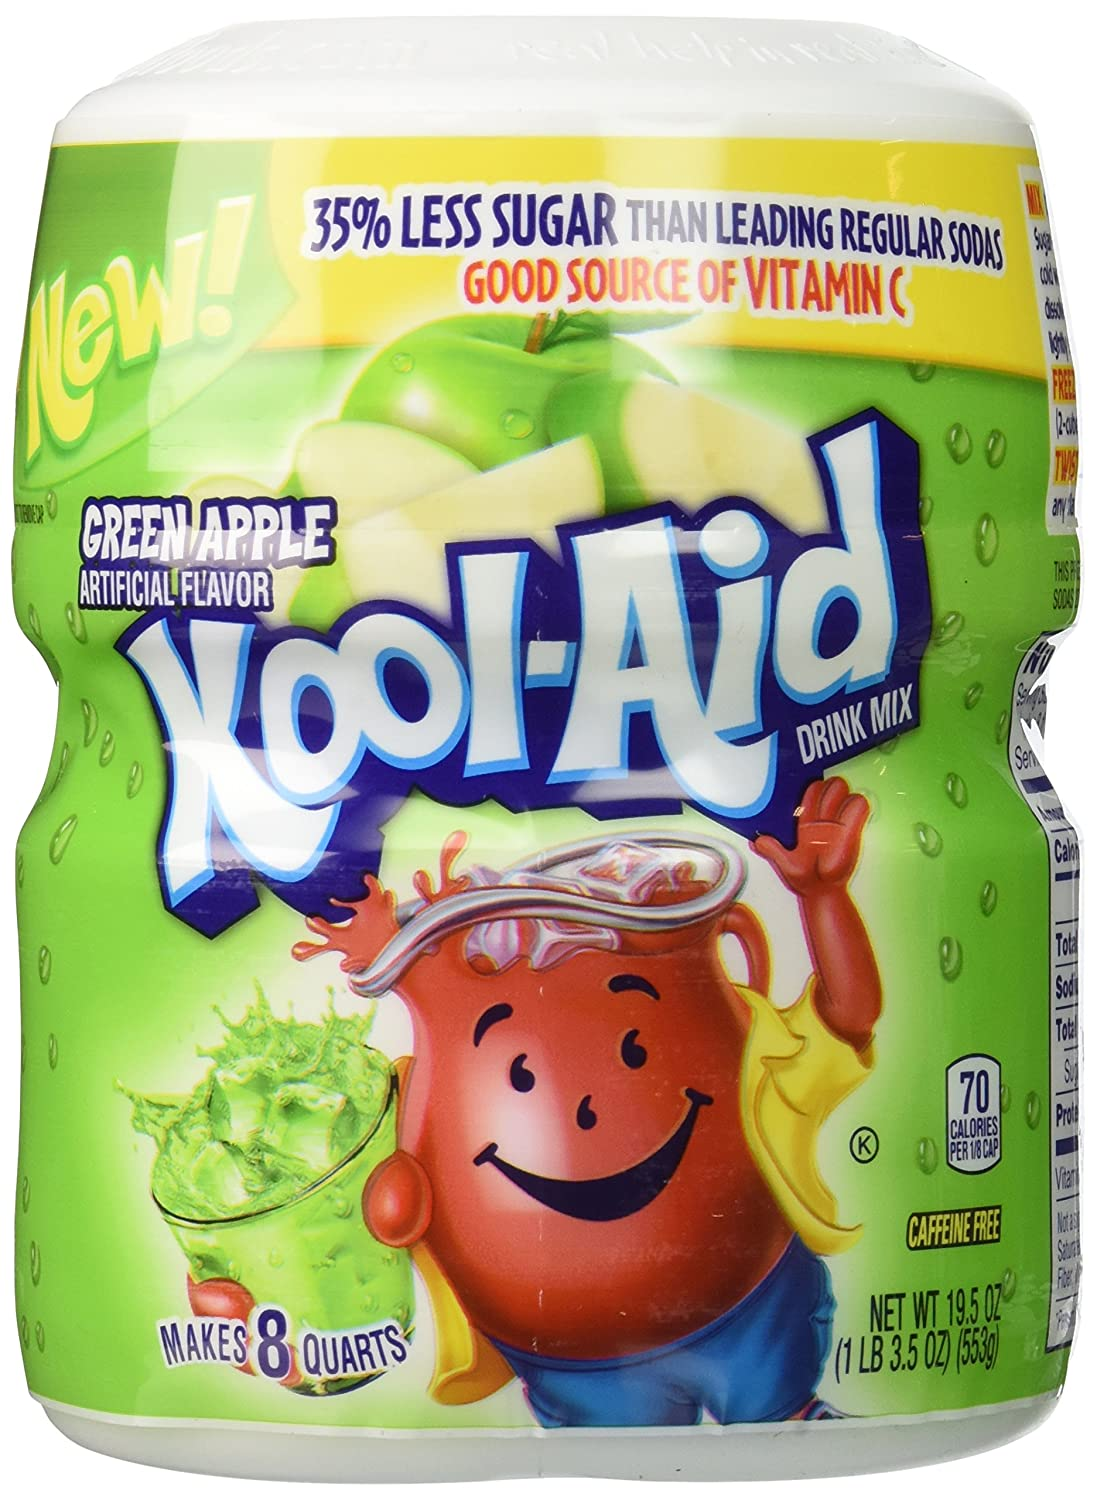 Kool-aid, Green Apple 2 Pack